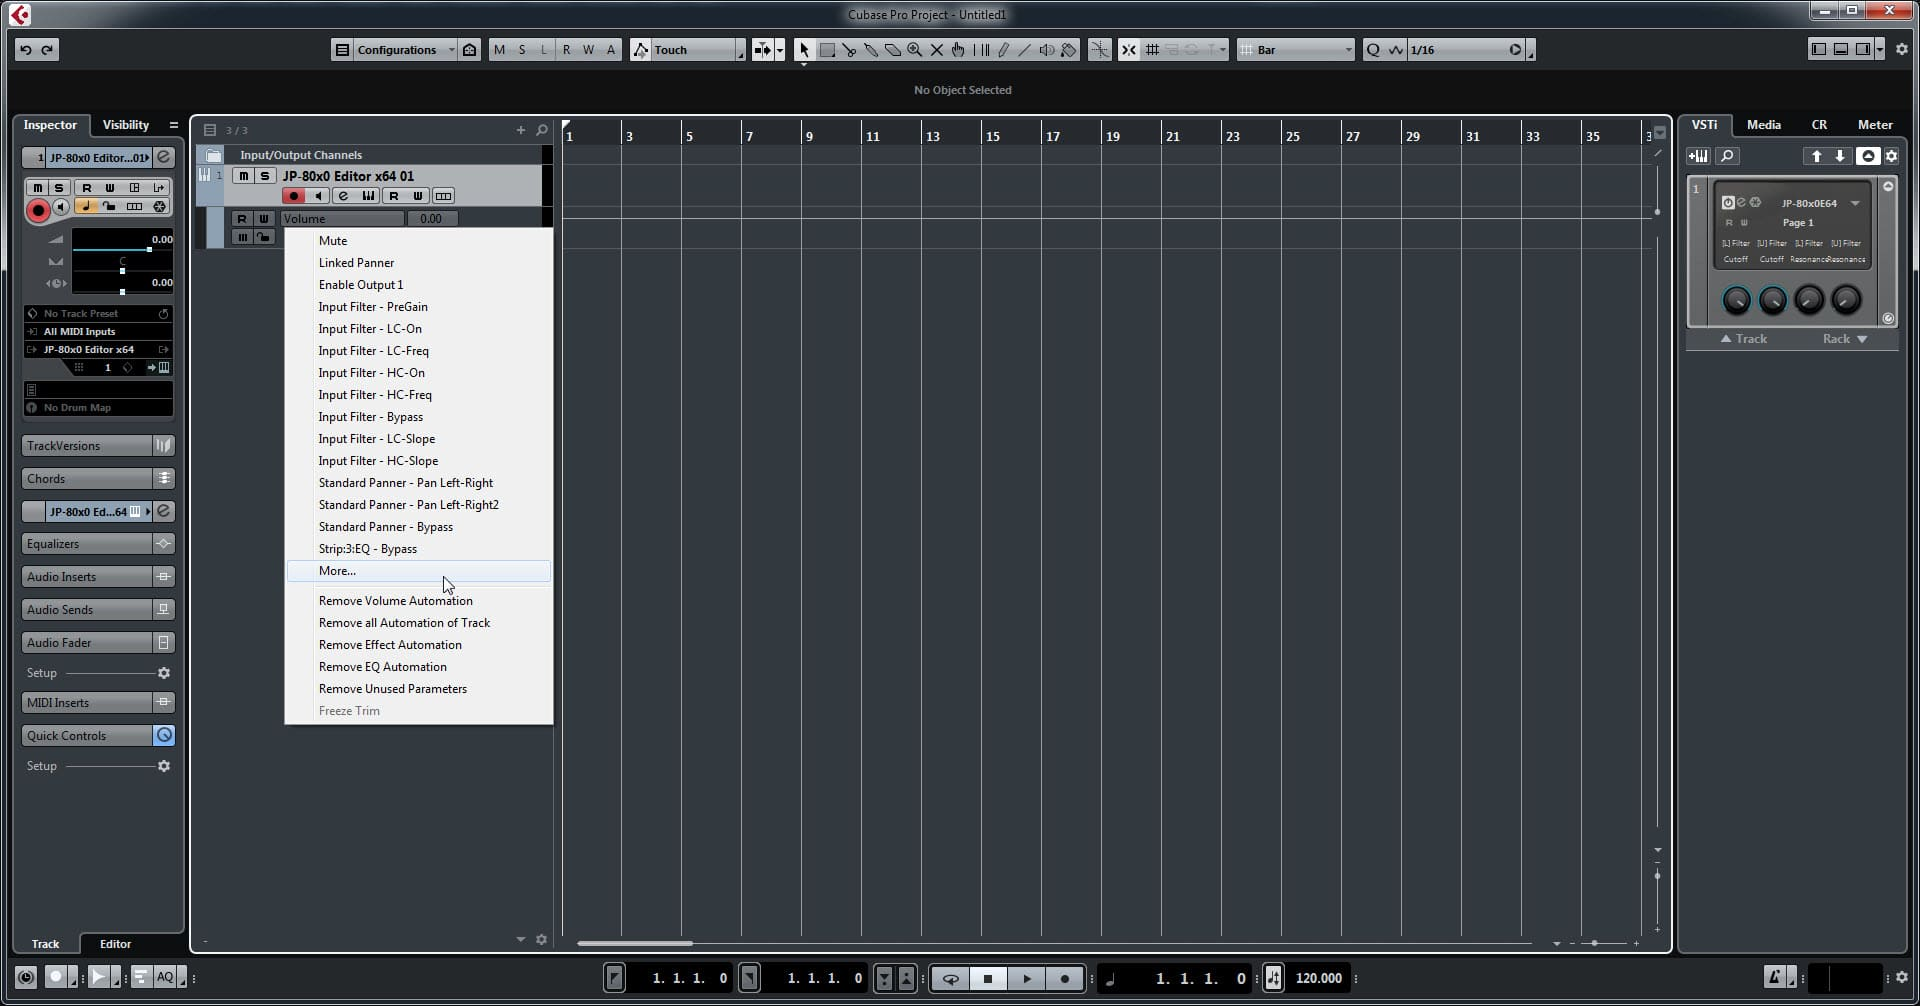 Steinberg Cubase Config - Click More to Reveal All Parameters